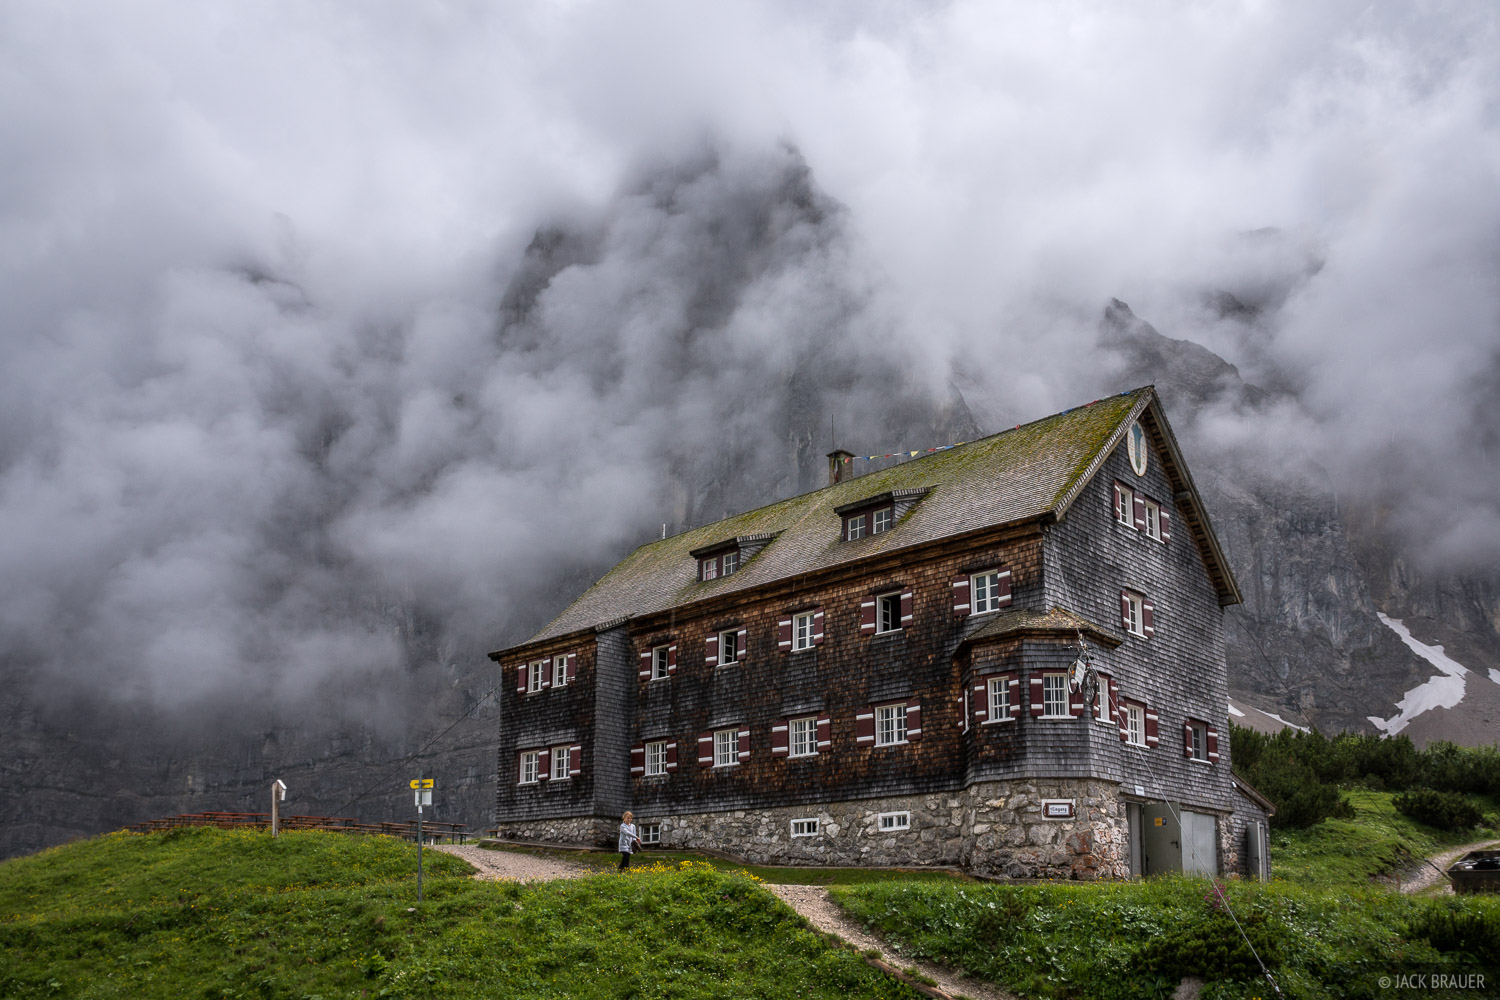 Clouds swirl around the vertical walls of the Laliderer Spitze (2588m) above the Falkenhütte.